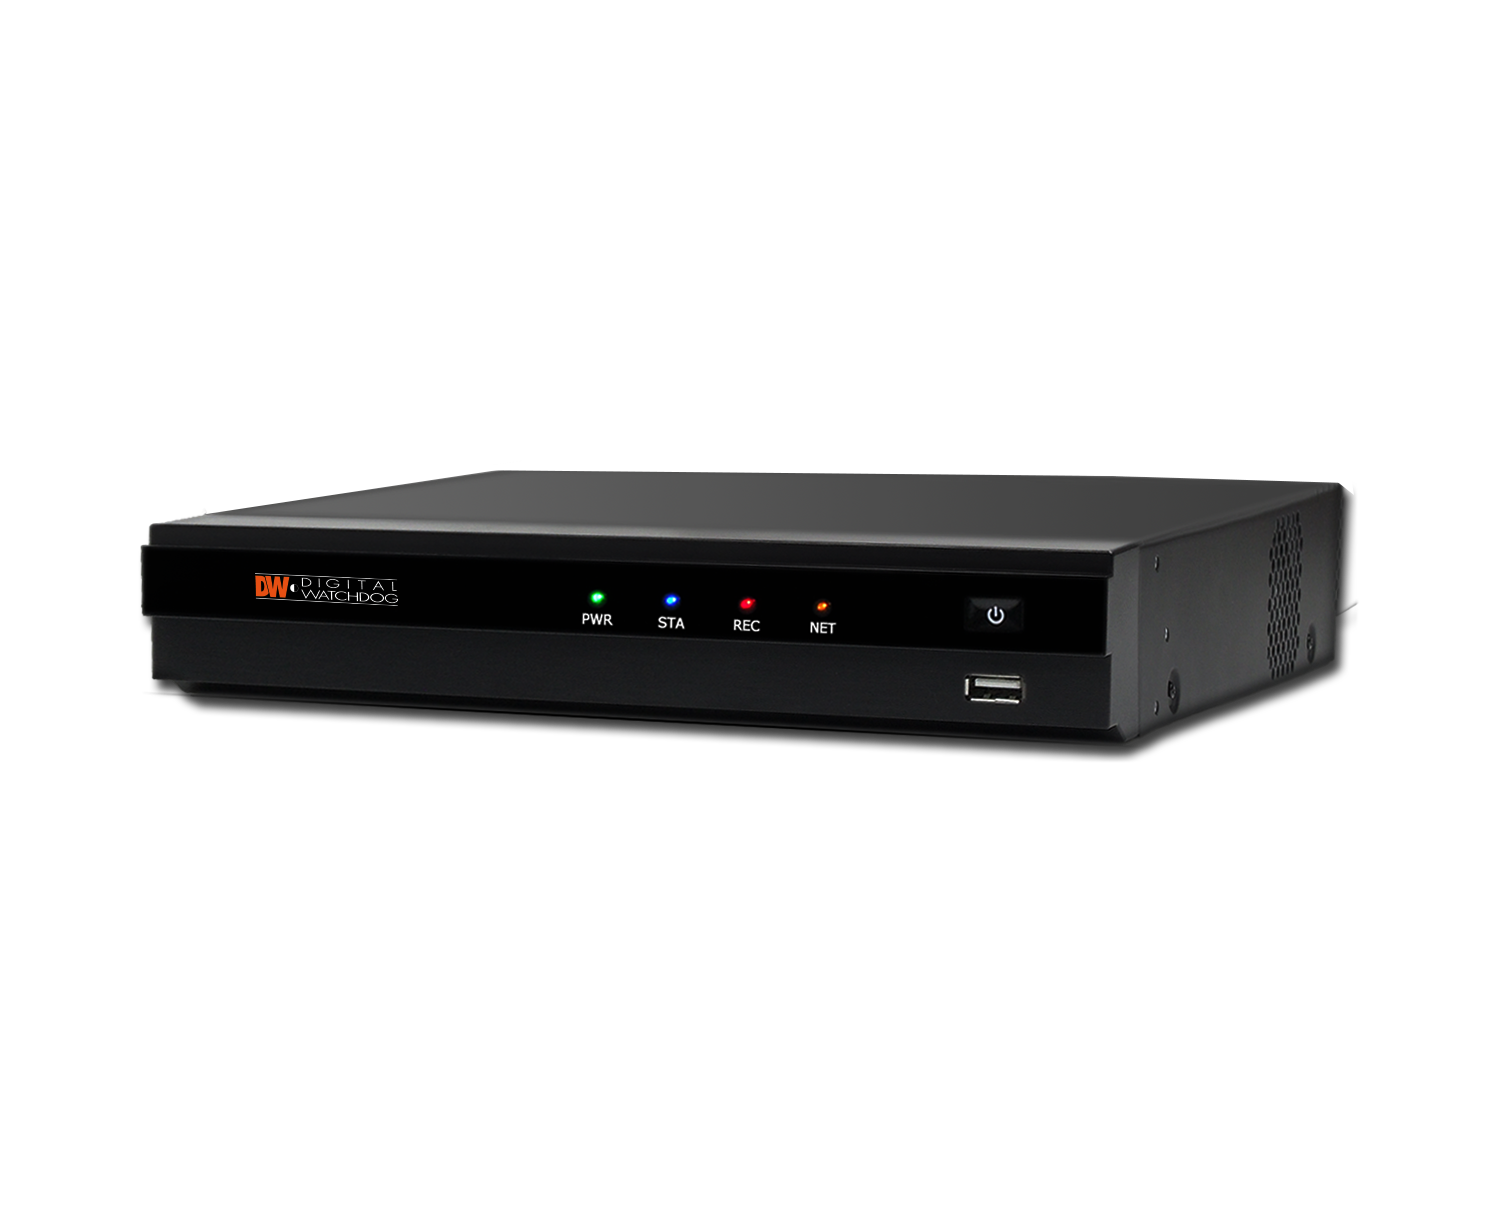 DW-VP92T4P *** DIGITAL WATCHDOG 9CH 2TB VMAX IP PLUS NVR SUPPORTS UP TO (9) 2.1 MP CAMERAS AT 30FPS (1080P)